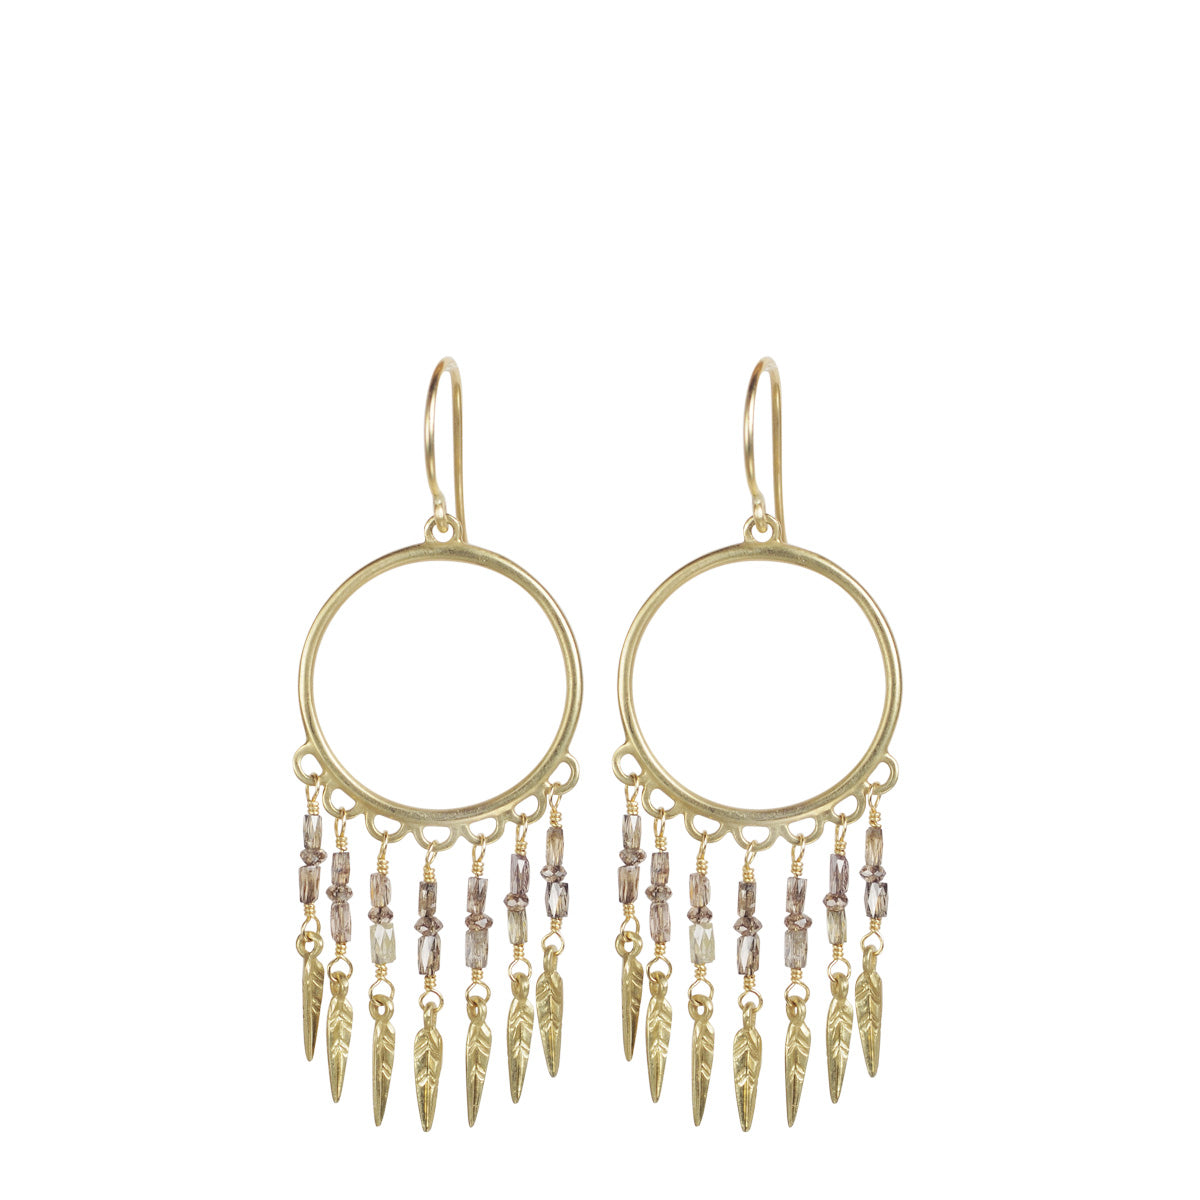 18K Gold Small Brown Diamond Dream Catcher Earrings